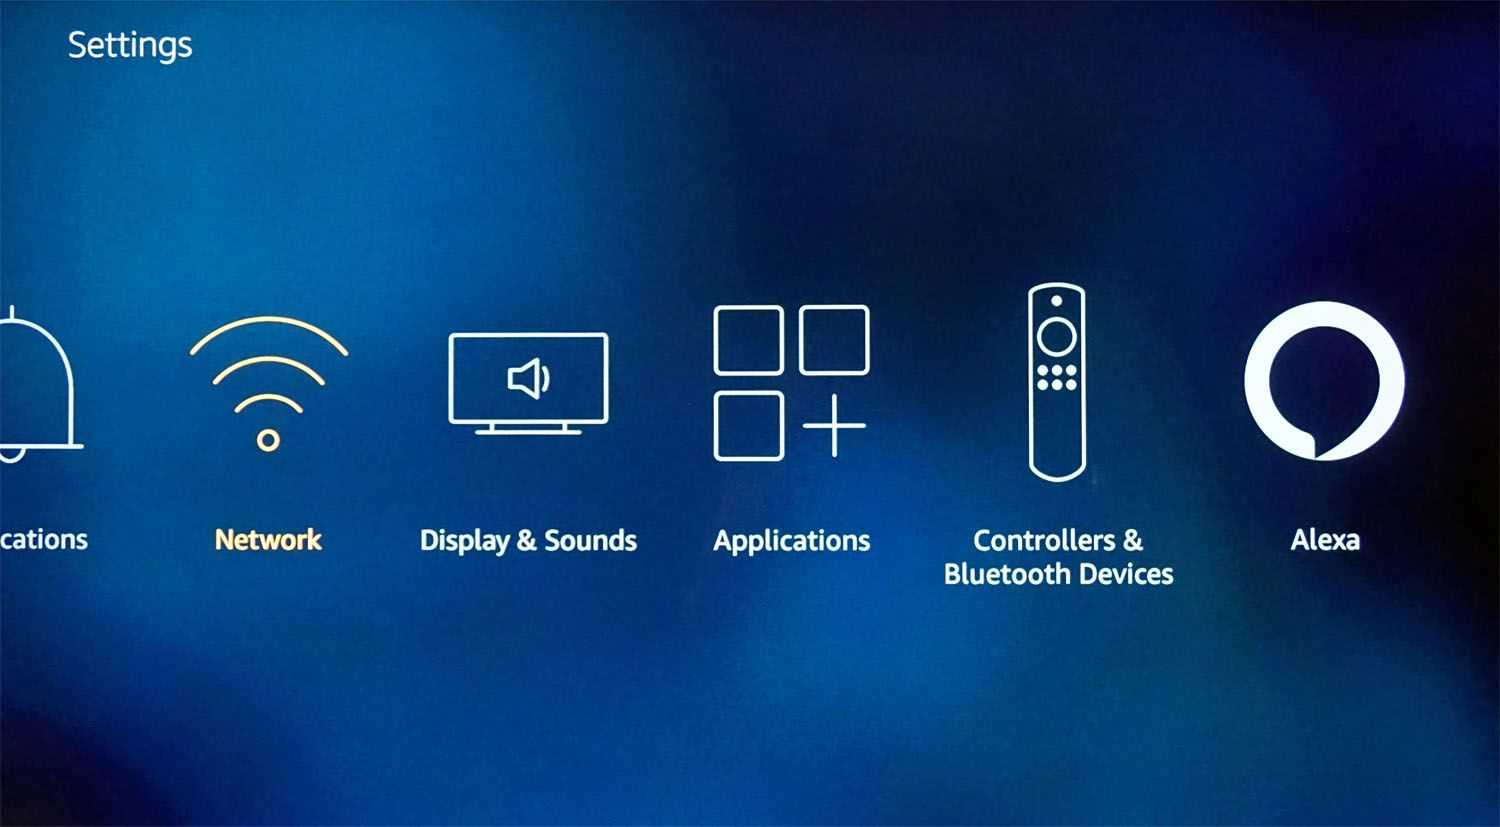 The Amazon Fire Tv Stick Review Directv Wireless Wiring Diagram Settings Page